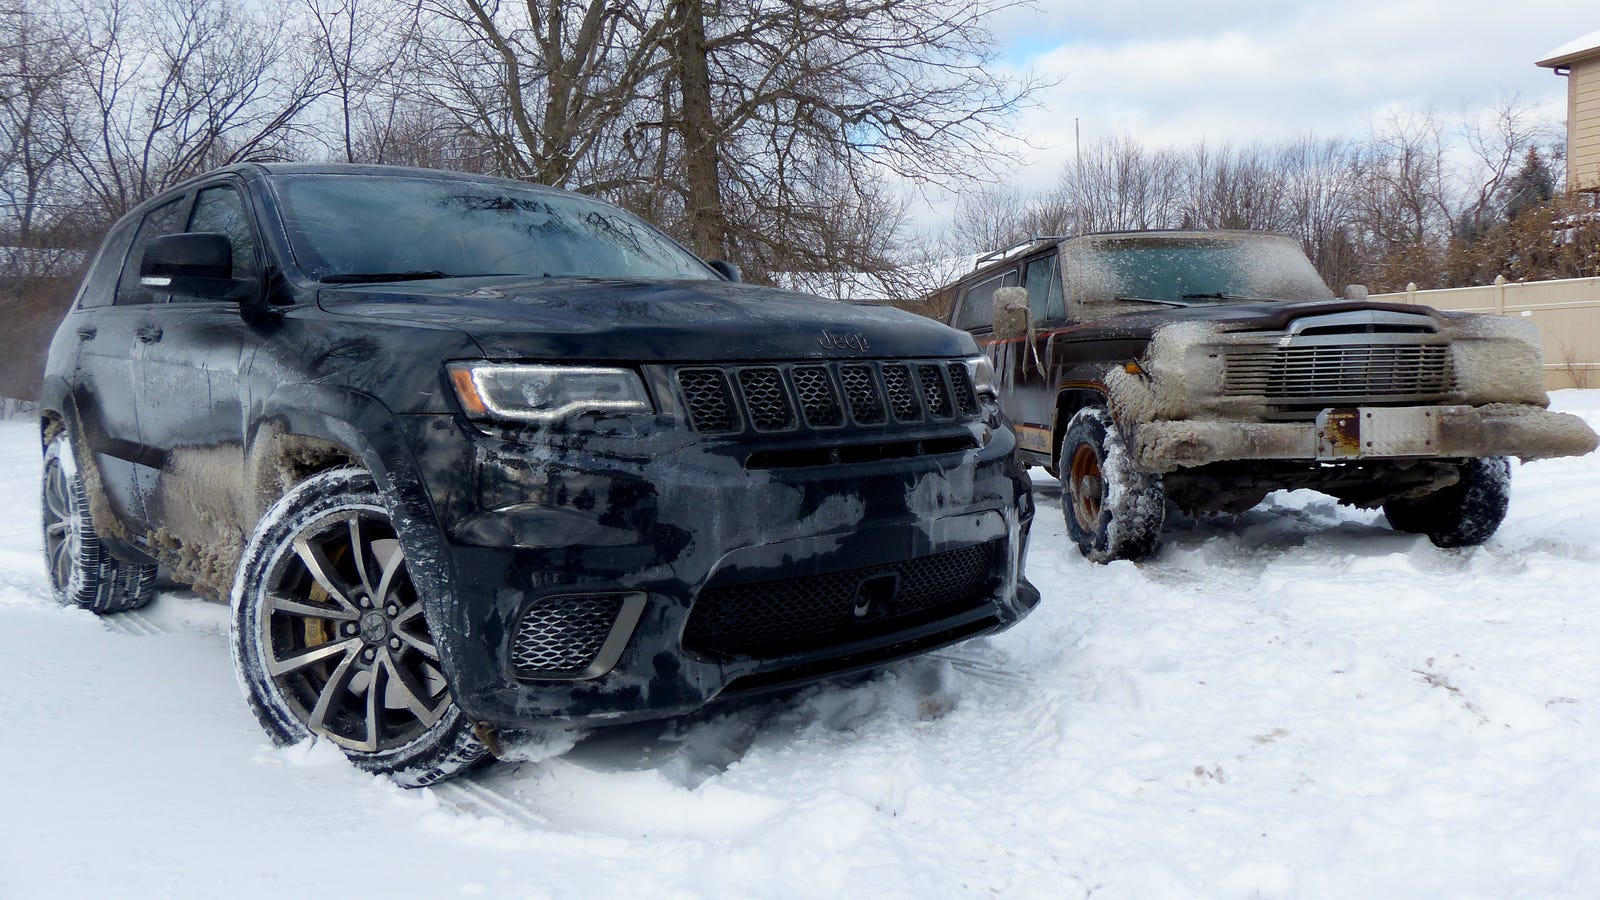 Towing An Old Jeep Through An Ice Storm With A 707 HP Jeep Grand Cherokee Trackhawk Was Truly Terrifying